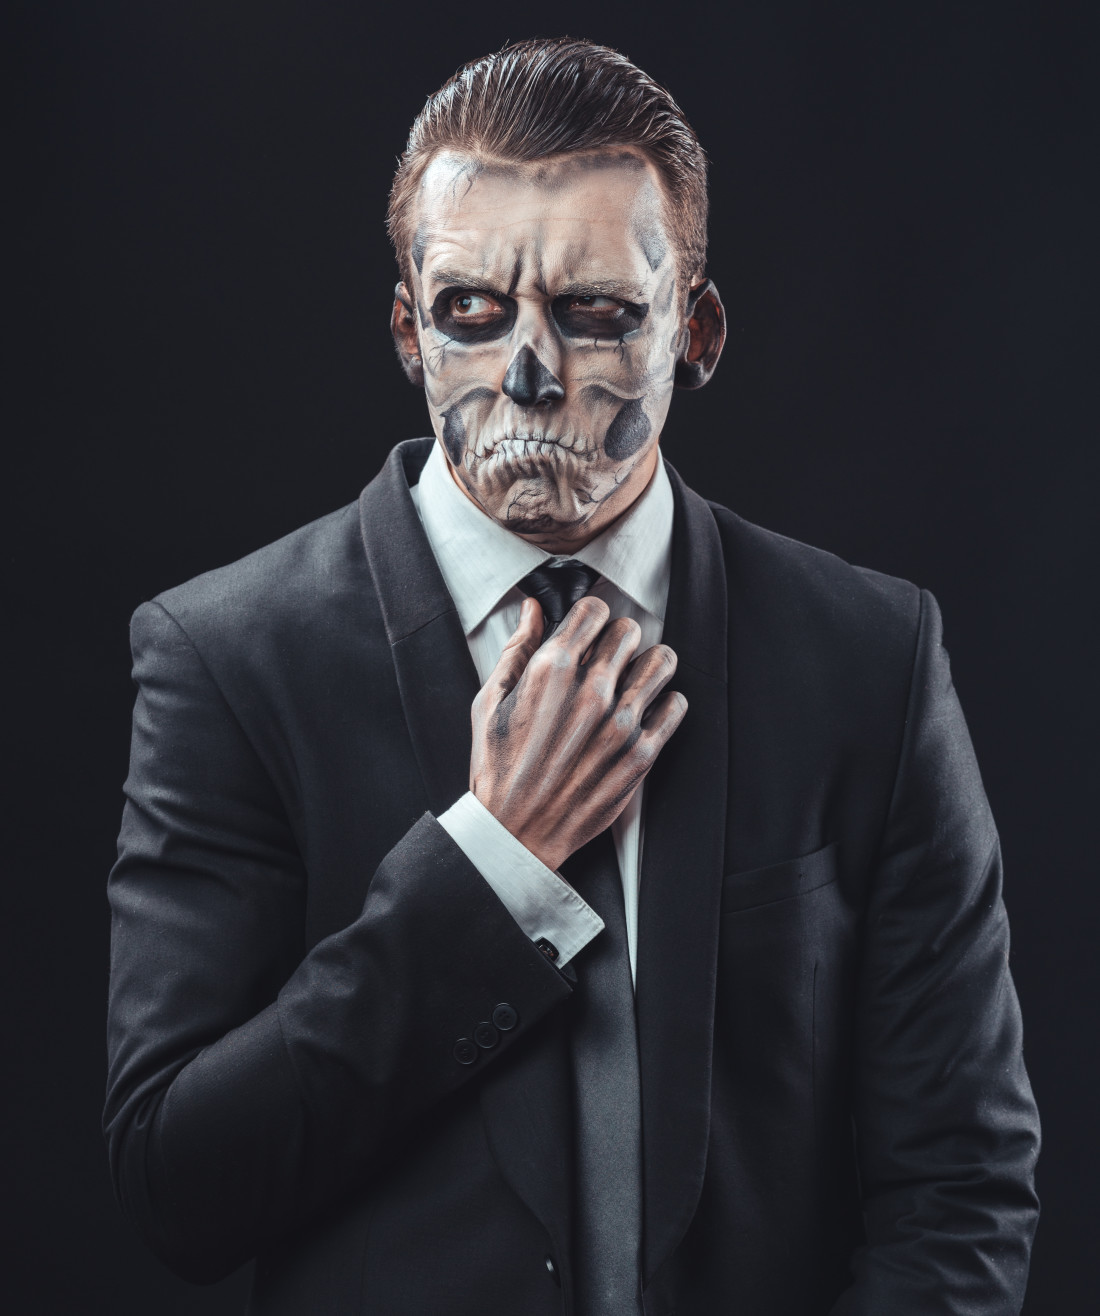 Business man with halloween make up